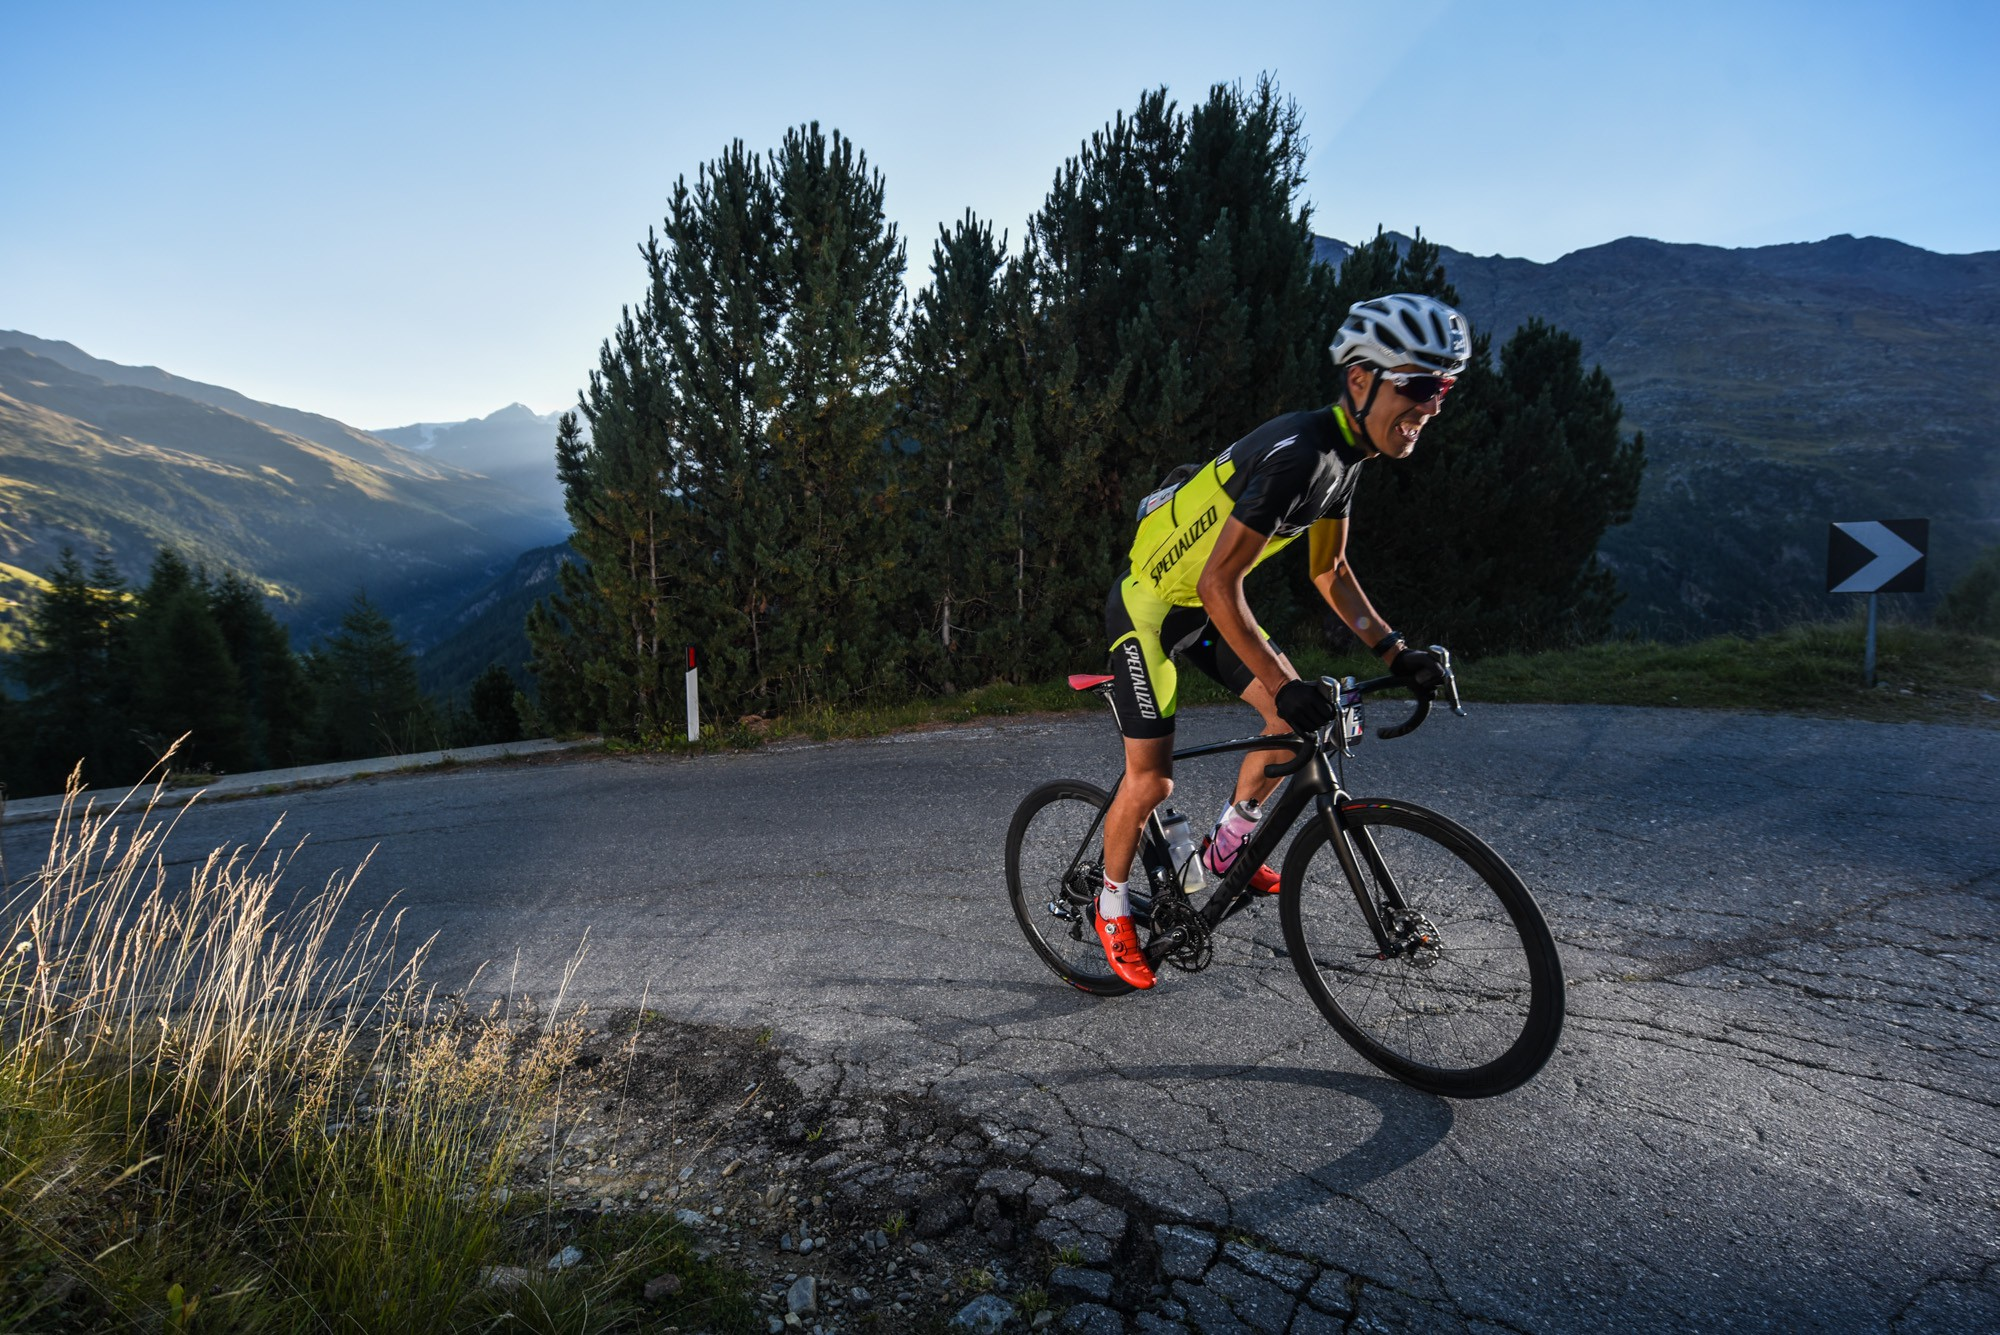 Nicolas raybaud specialized in the rise of the passo di giau during haute route